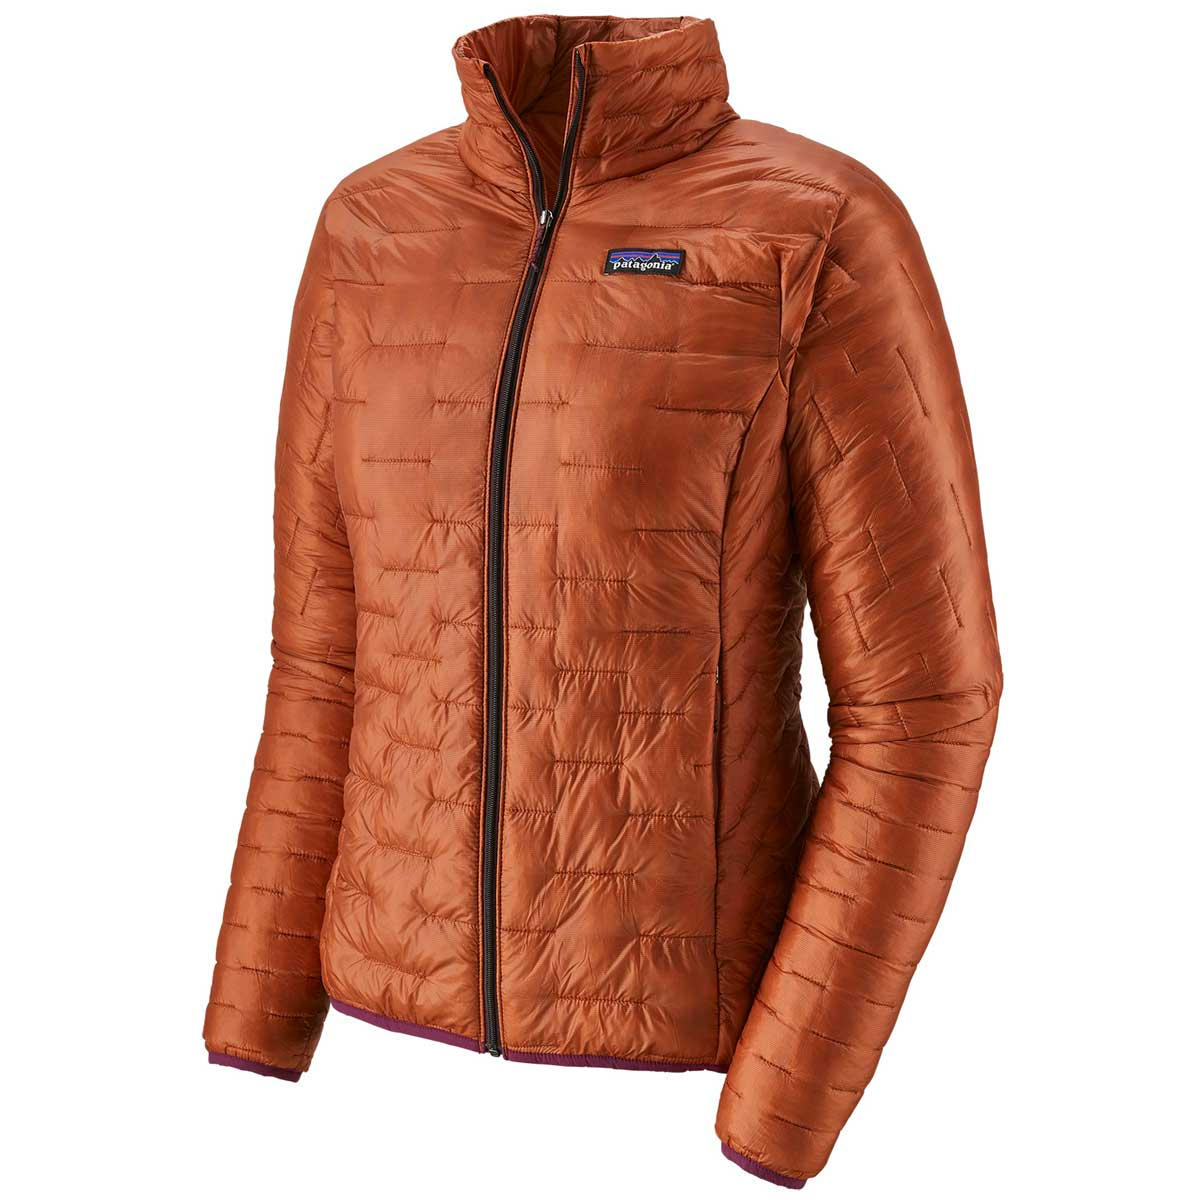 Patagonia women's Micro Puff Jacket in Sunset Orange front view